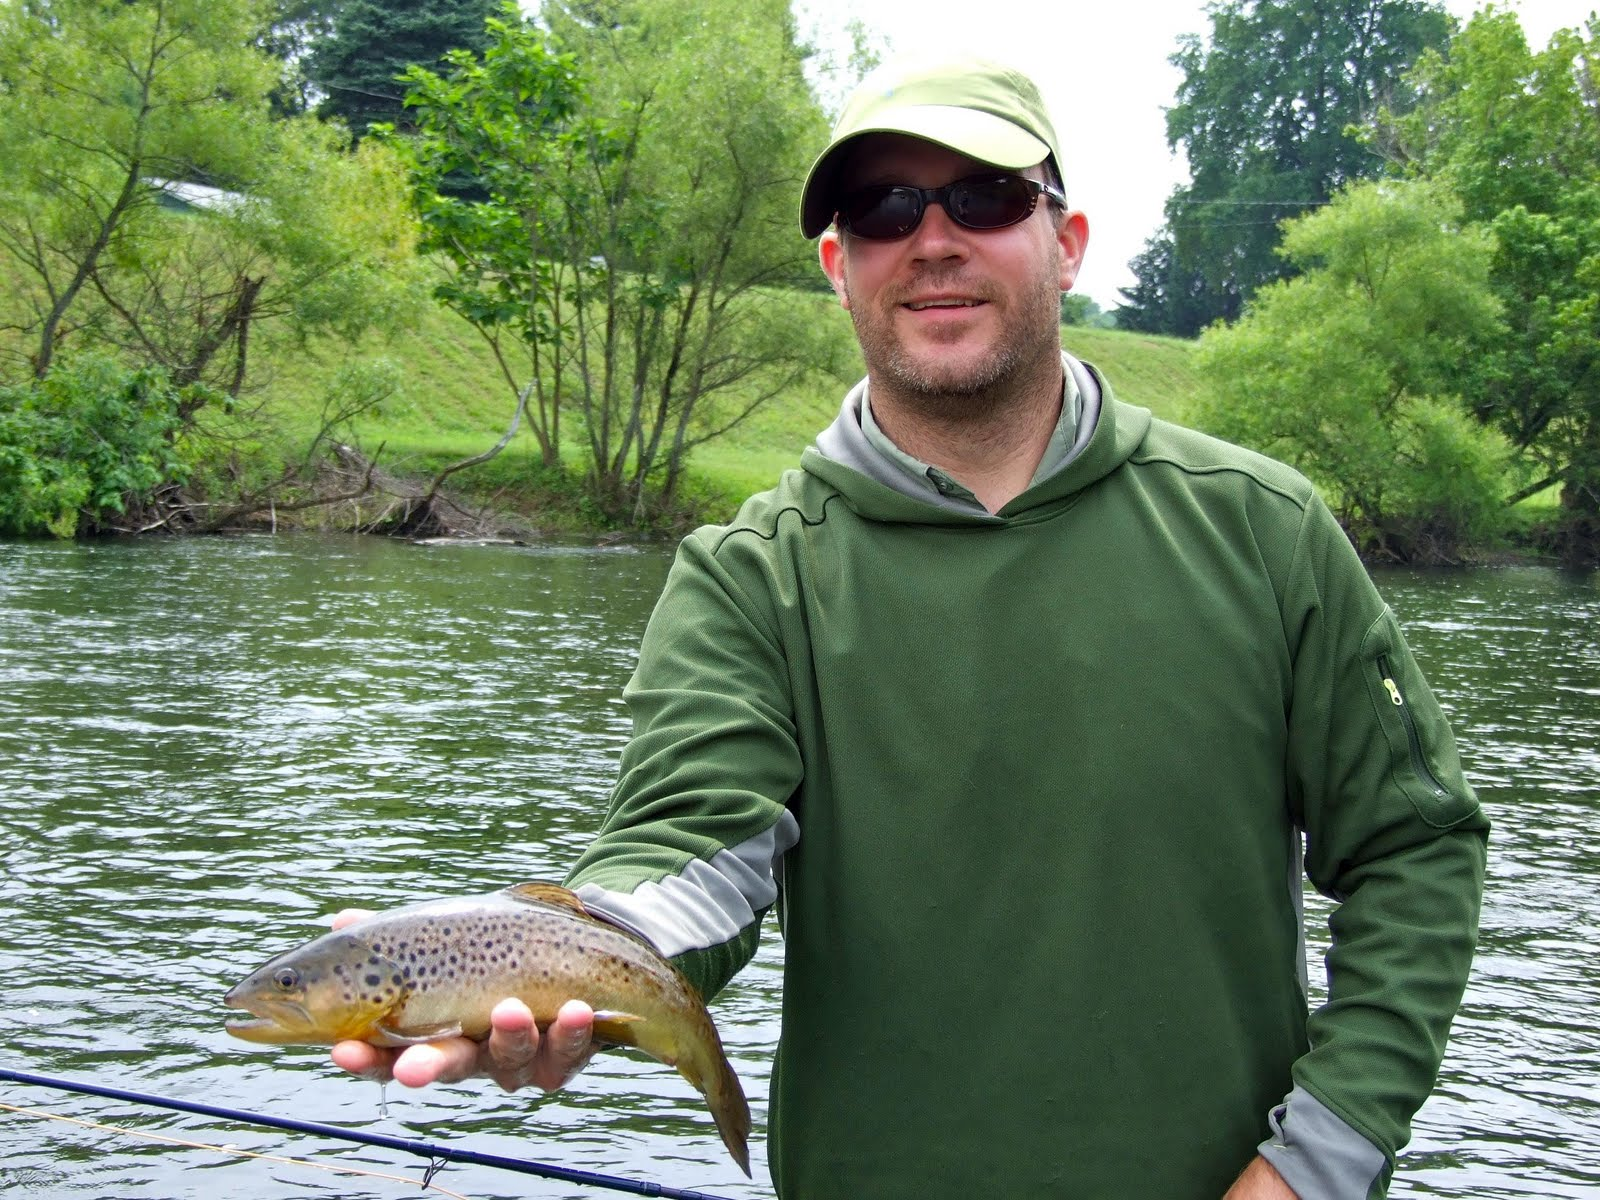 Chagrin river outfitters one last trip to the yough for for Youghiogheny river fishing